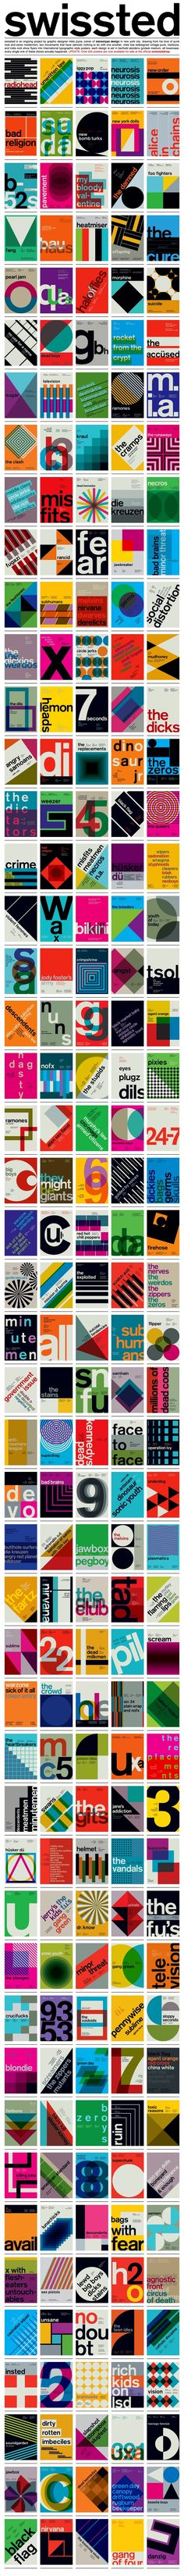 swissted is an ongoing project by graphic designer mike joyce. drawing from his love of punk rock and swiss modernism. each design is set in lowercase berthold akzidenz-grotesk medium Graphisches Design, Buch Design, Swiss Design, Layout Design, Print Design, Logo Design, Graphic Design Posters, Graphic Design Typography, Graphic Design Illustration